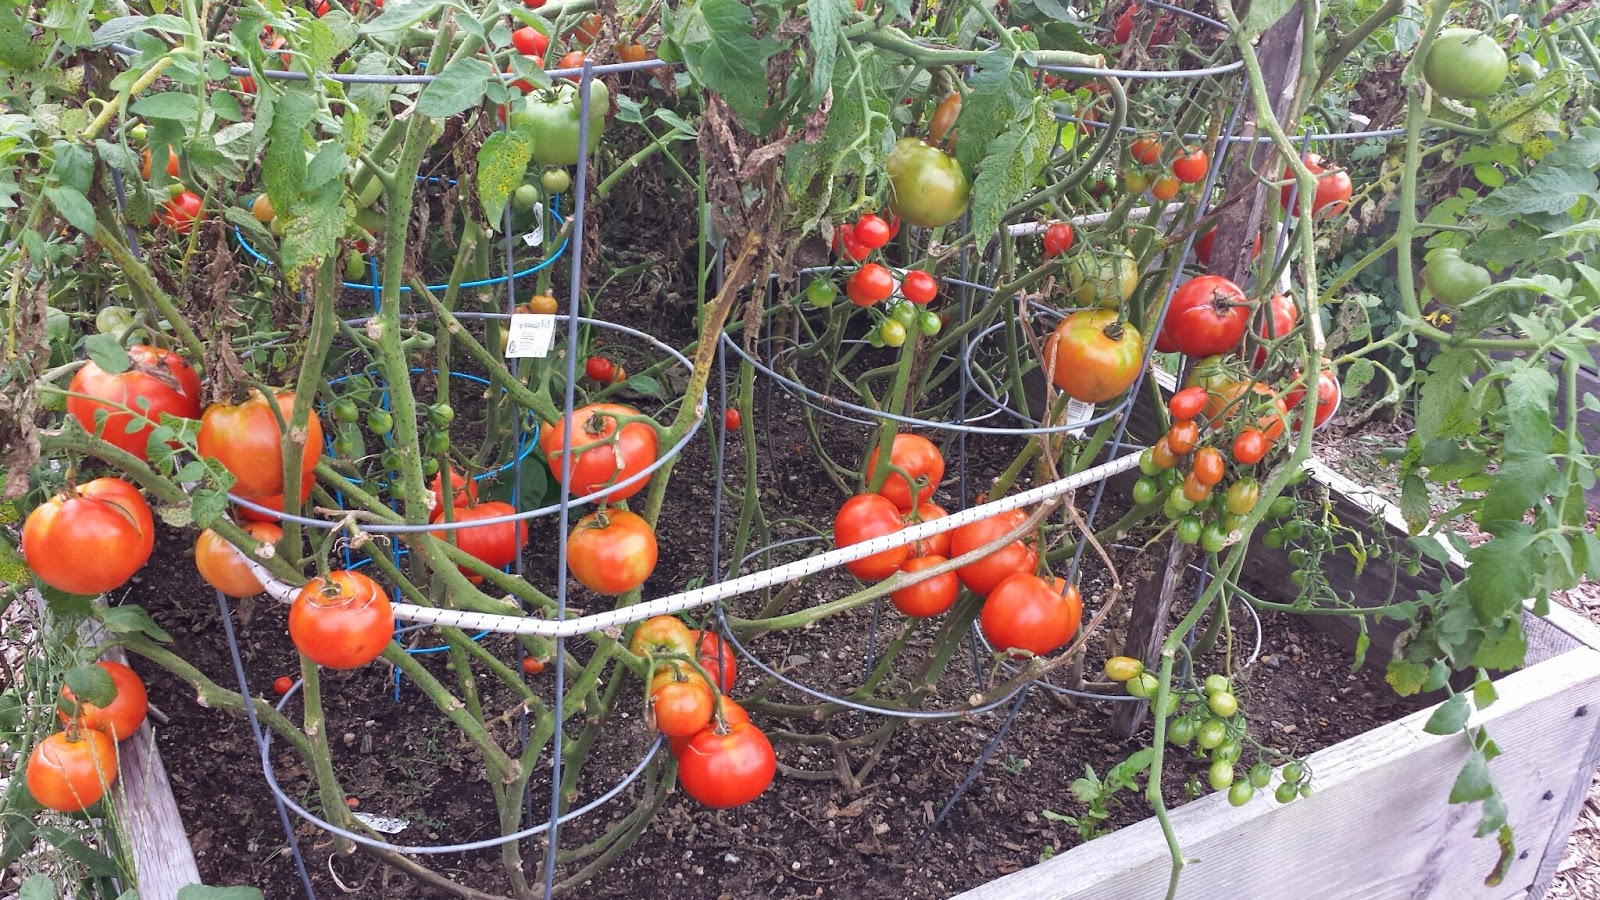 tomatoes at one of the Community Garden plots